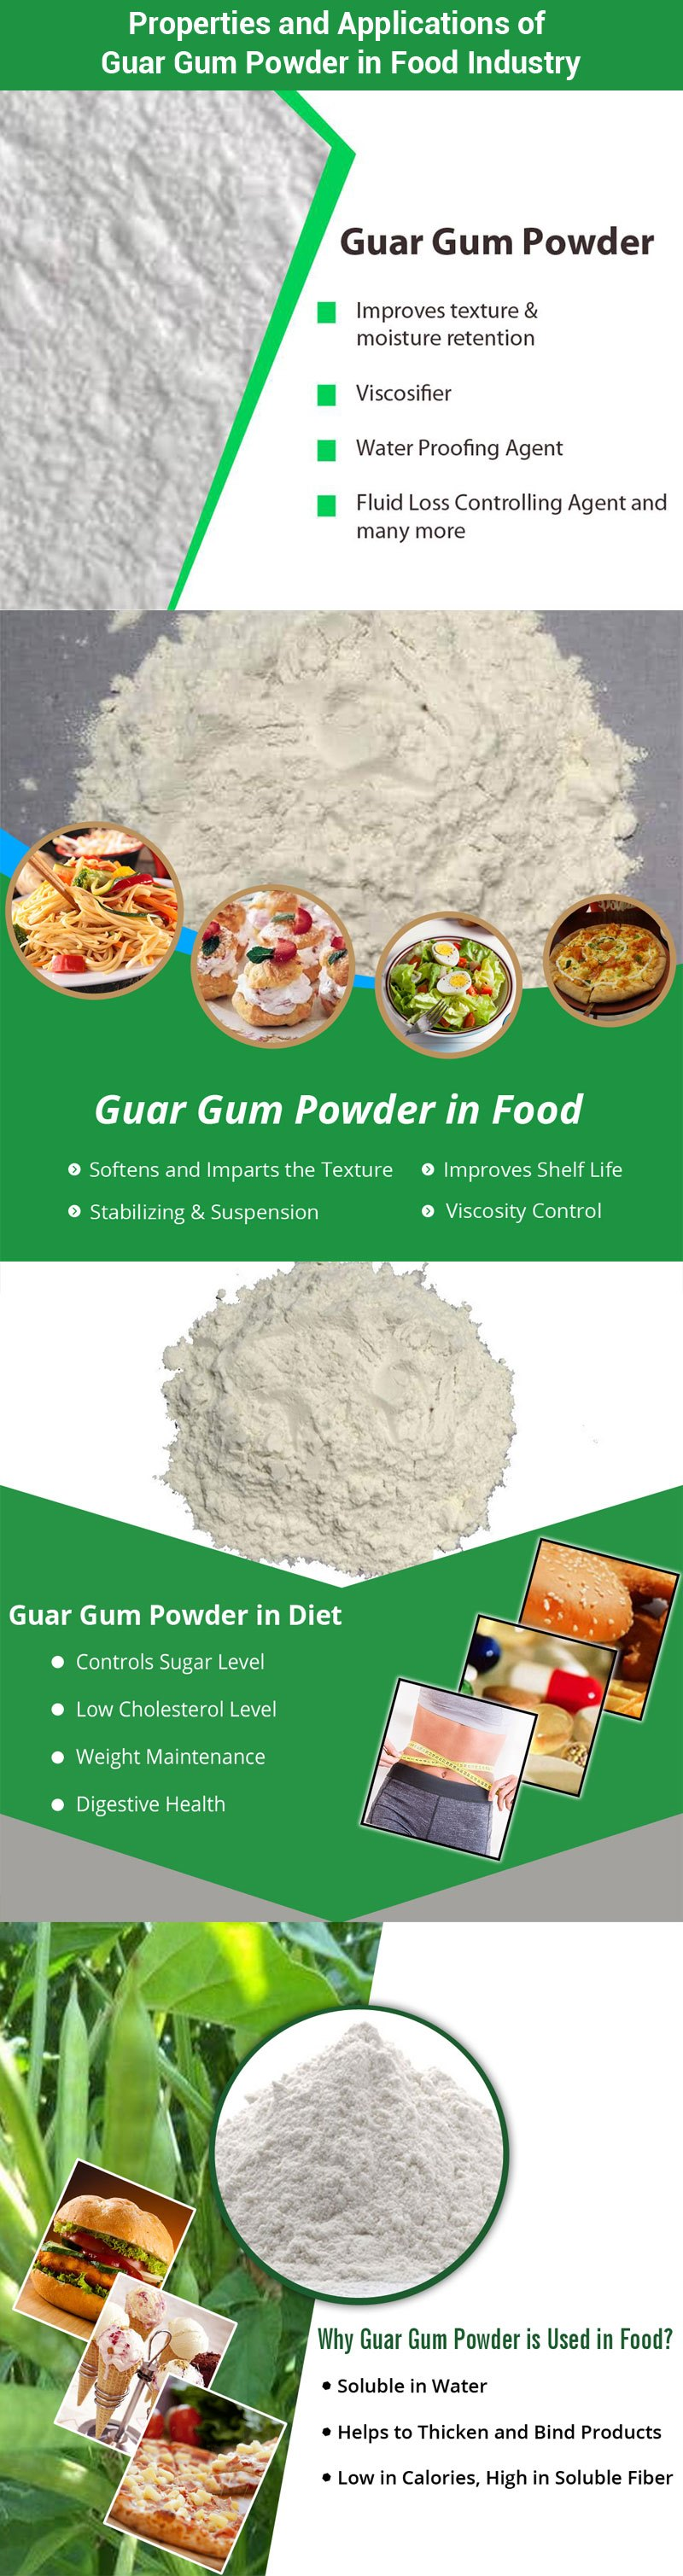 Guar Gum Powder for Food Industry